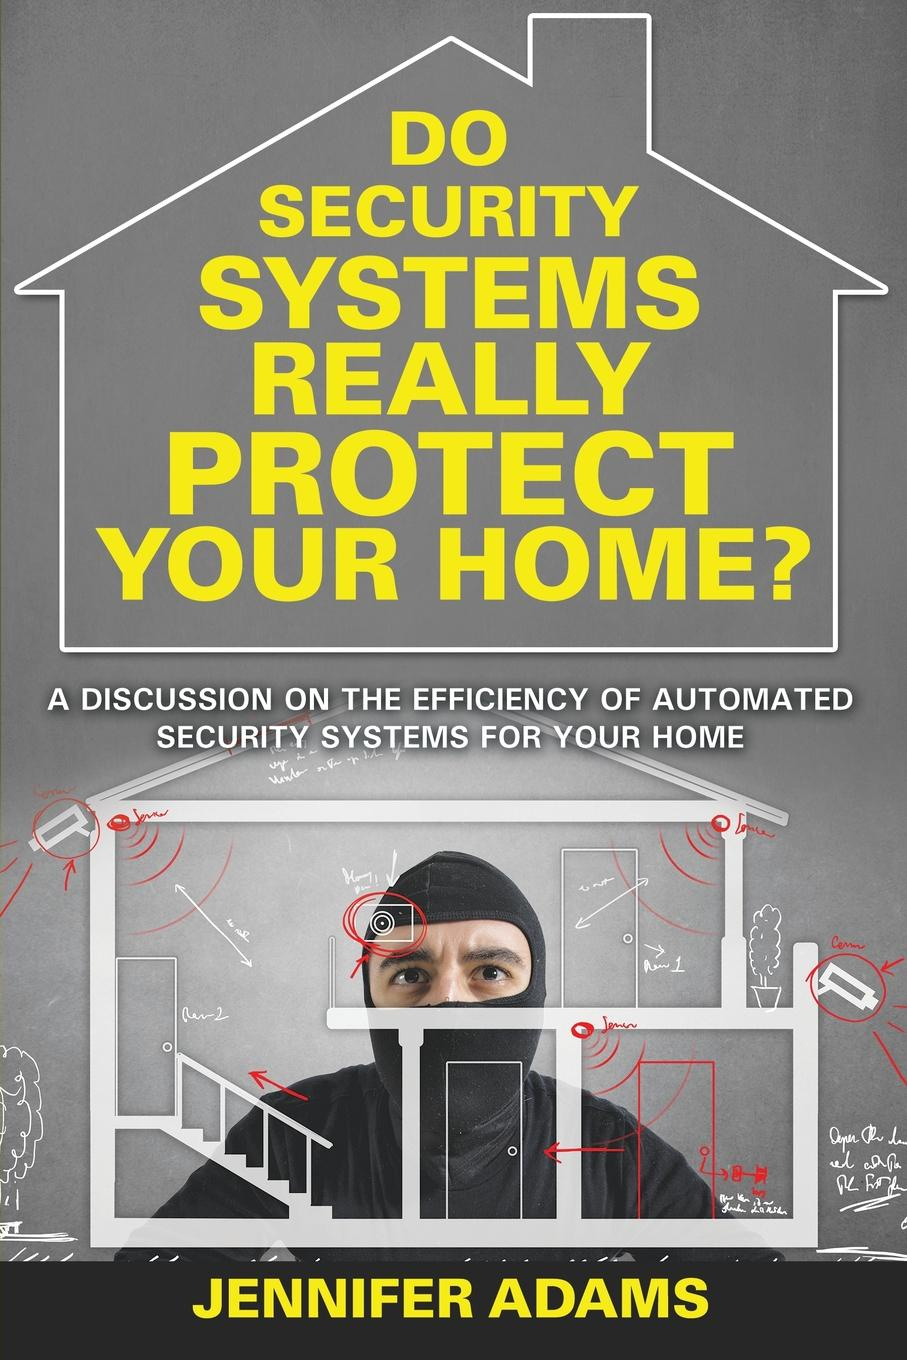 Jennifer Adams Do Security Systems Really Protect Your Home?. A Discussion on the Efficiency of Automated Security Systems for Your Home